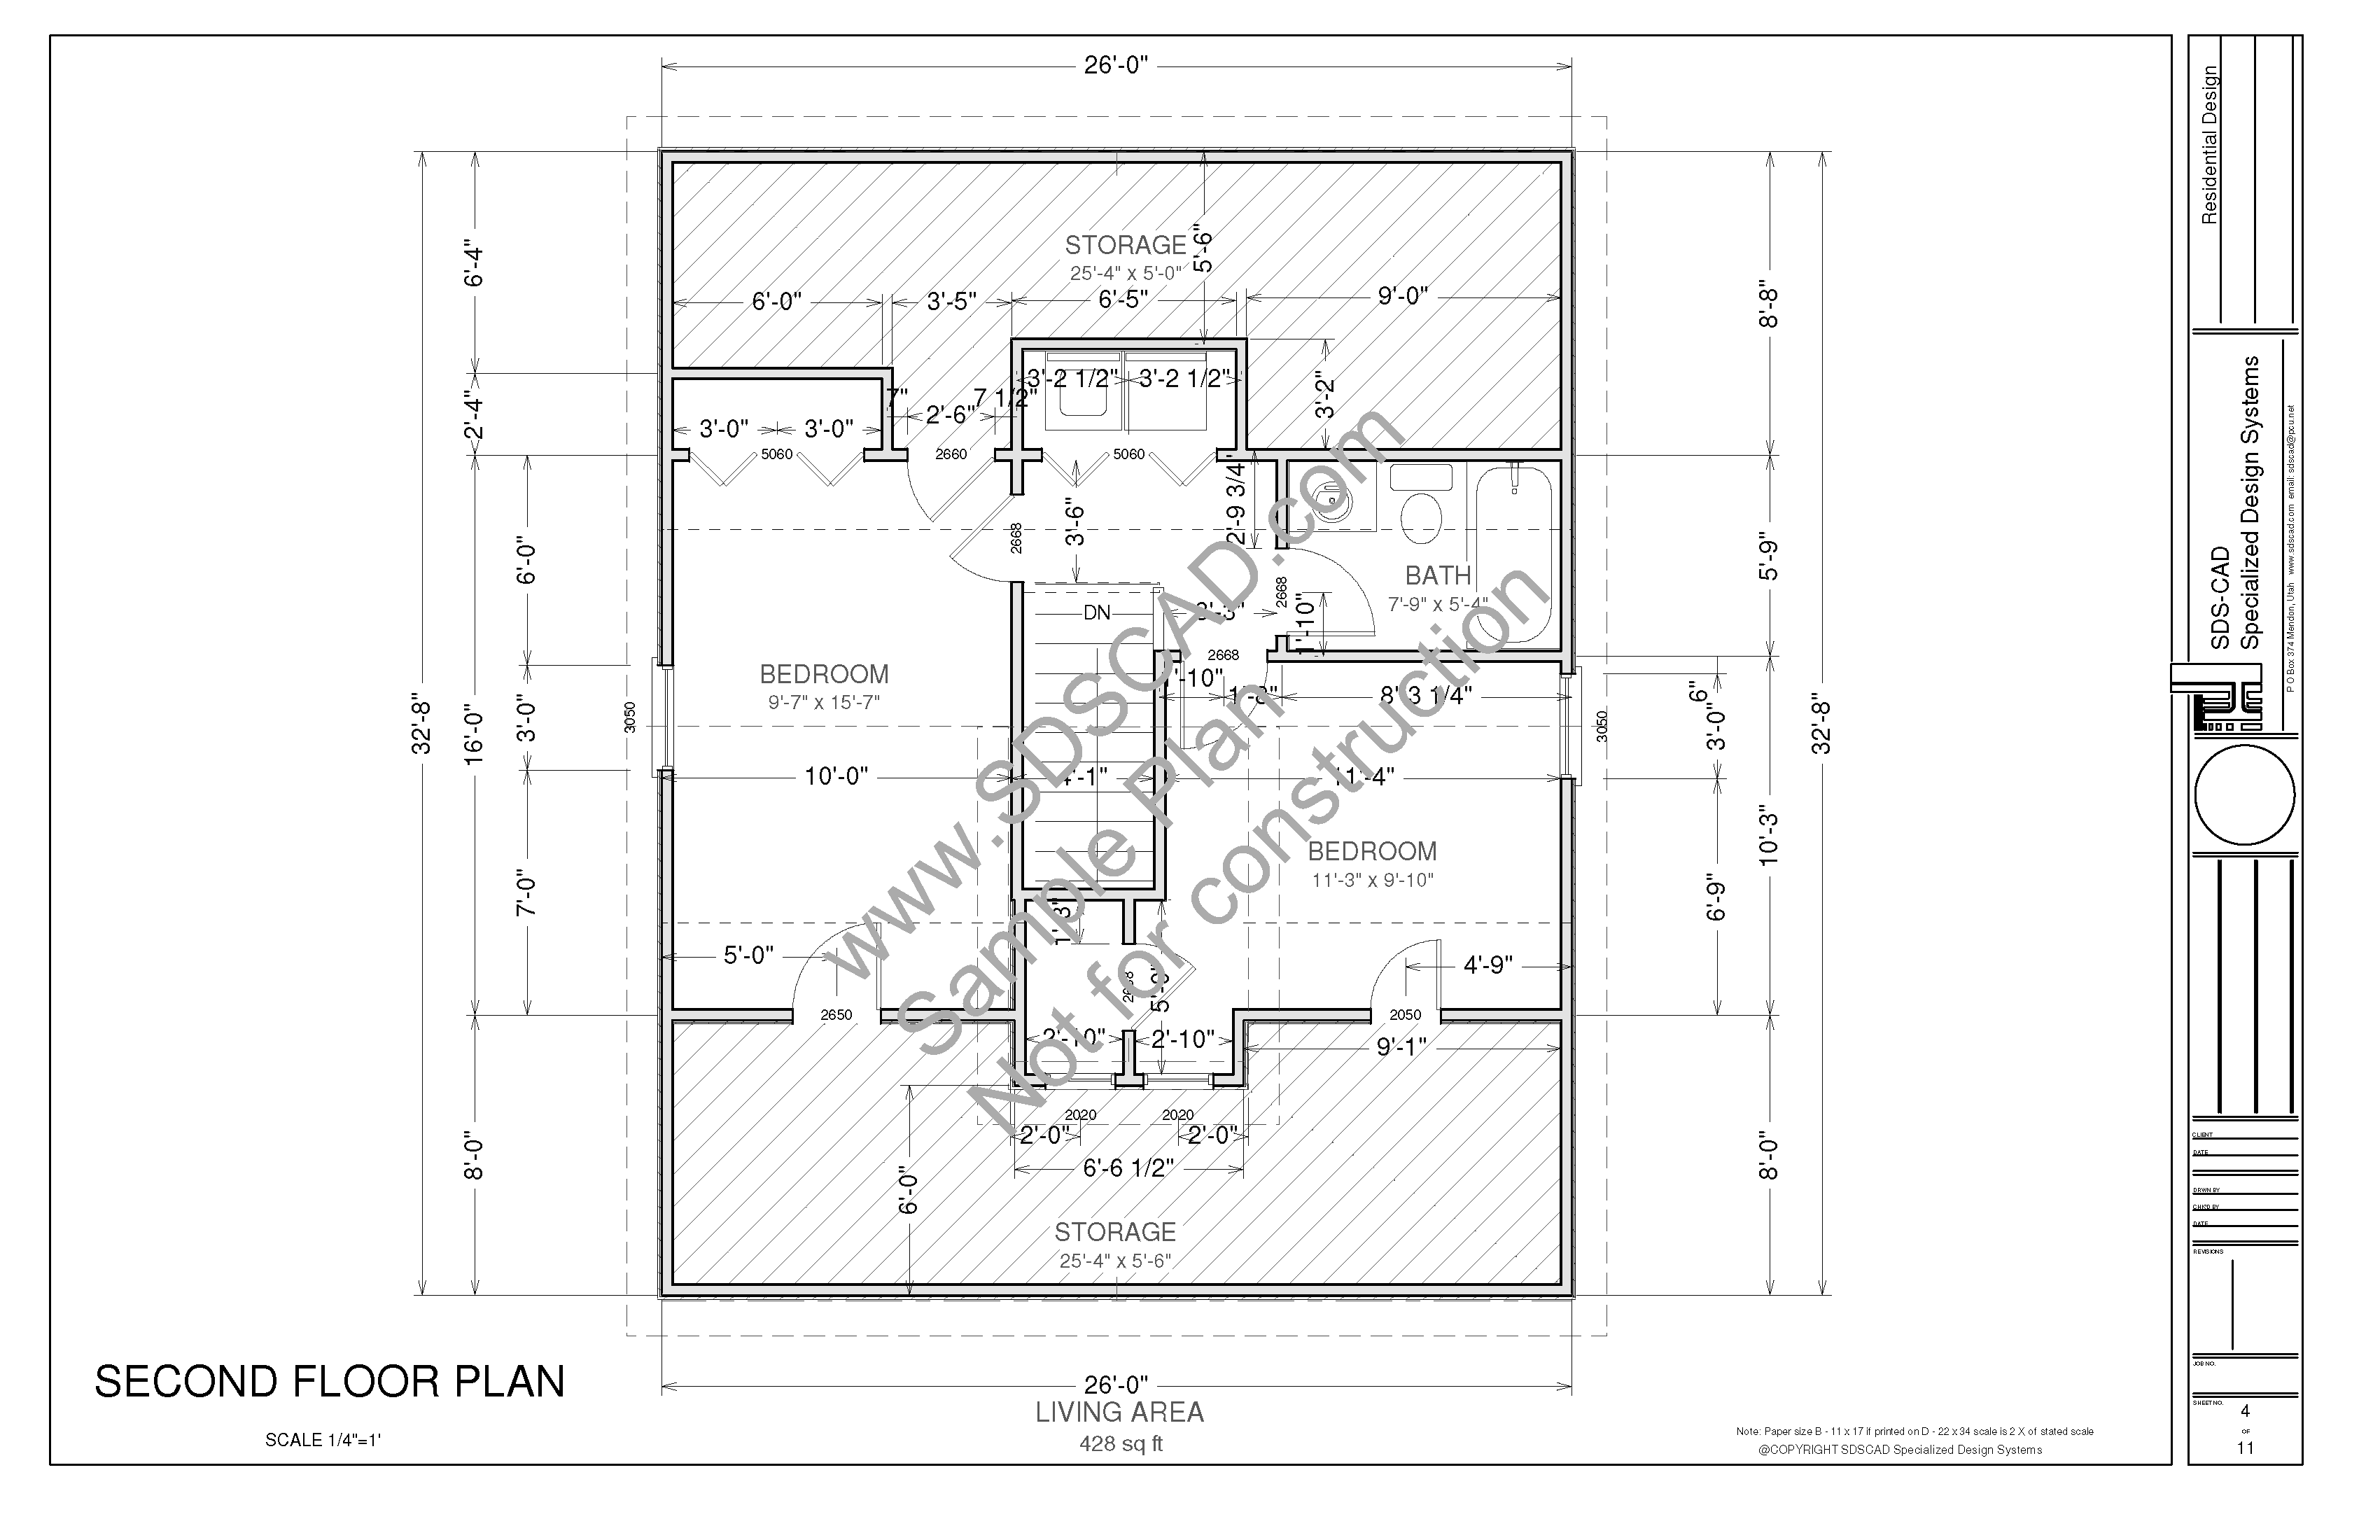 Cottage house plans 1100 sq ft cottage house plans one for Floor plans for 1100 sq ft home